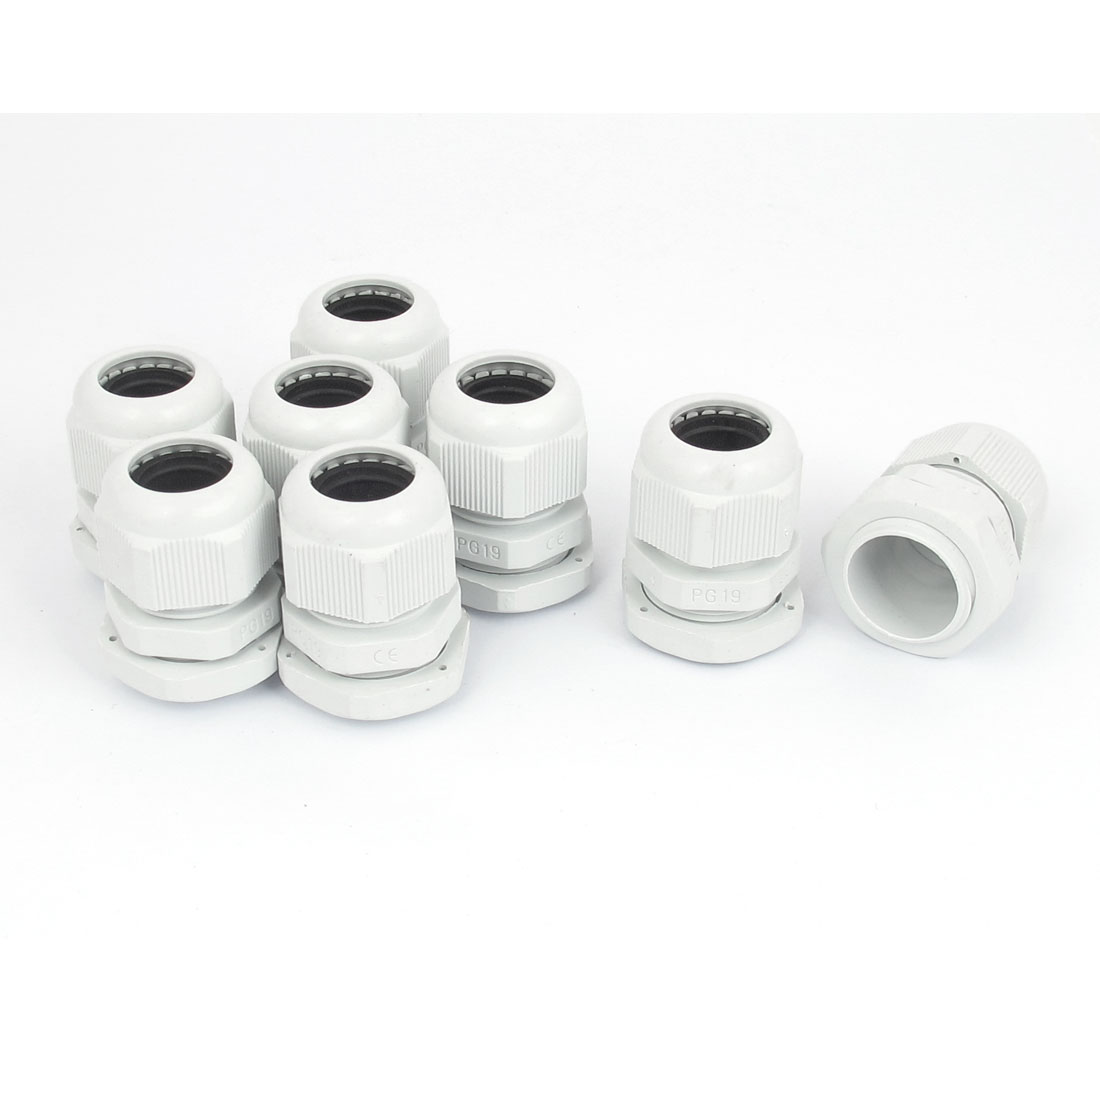 8pcs PG19 8-15mm Range Waterproof Wire Cable Fixing Glands Connector Joints Adapter White